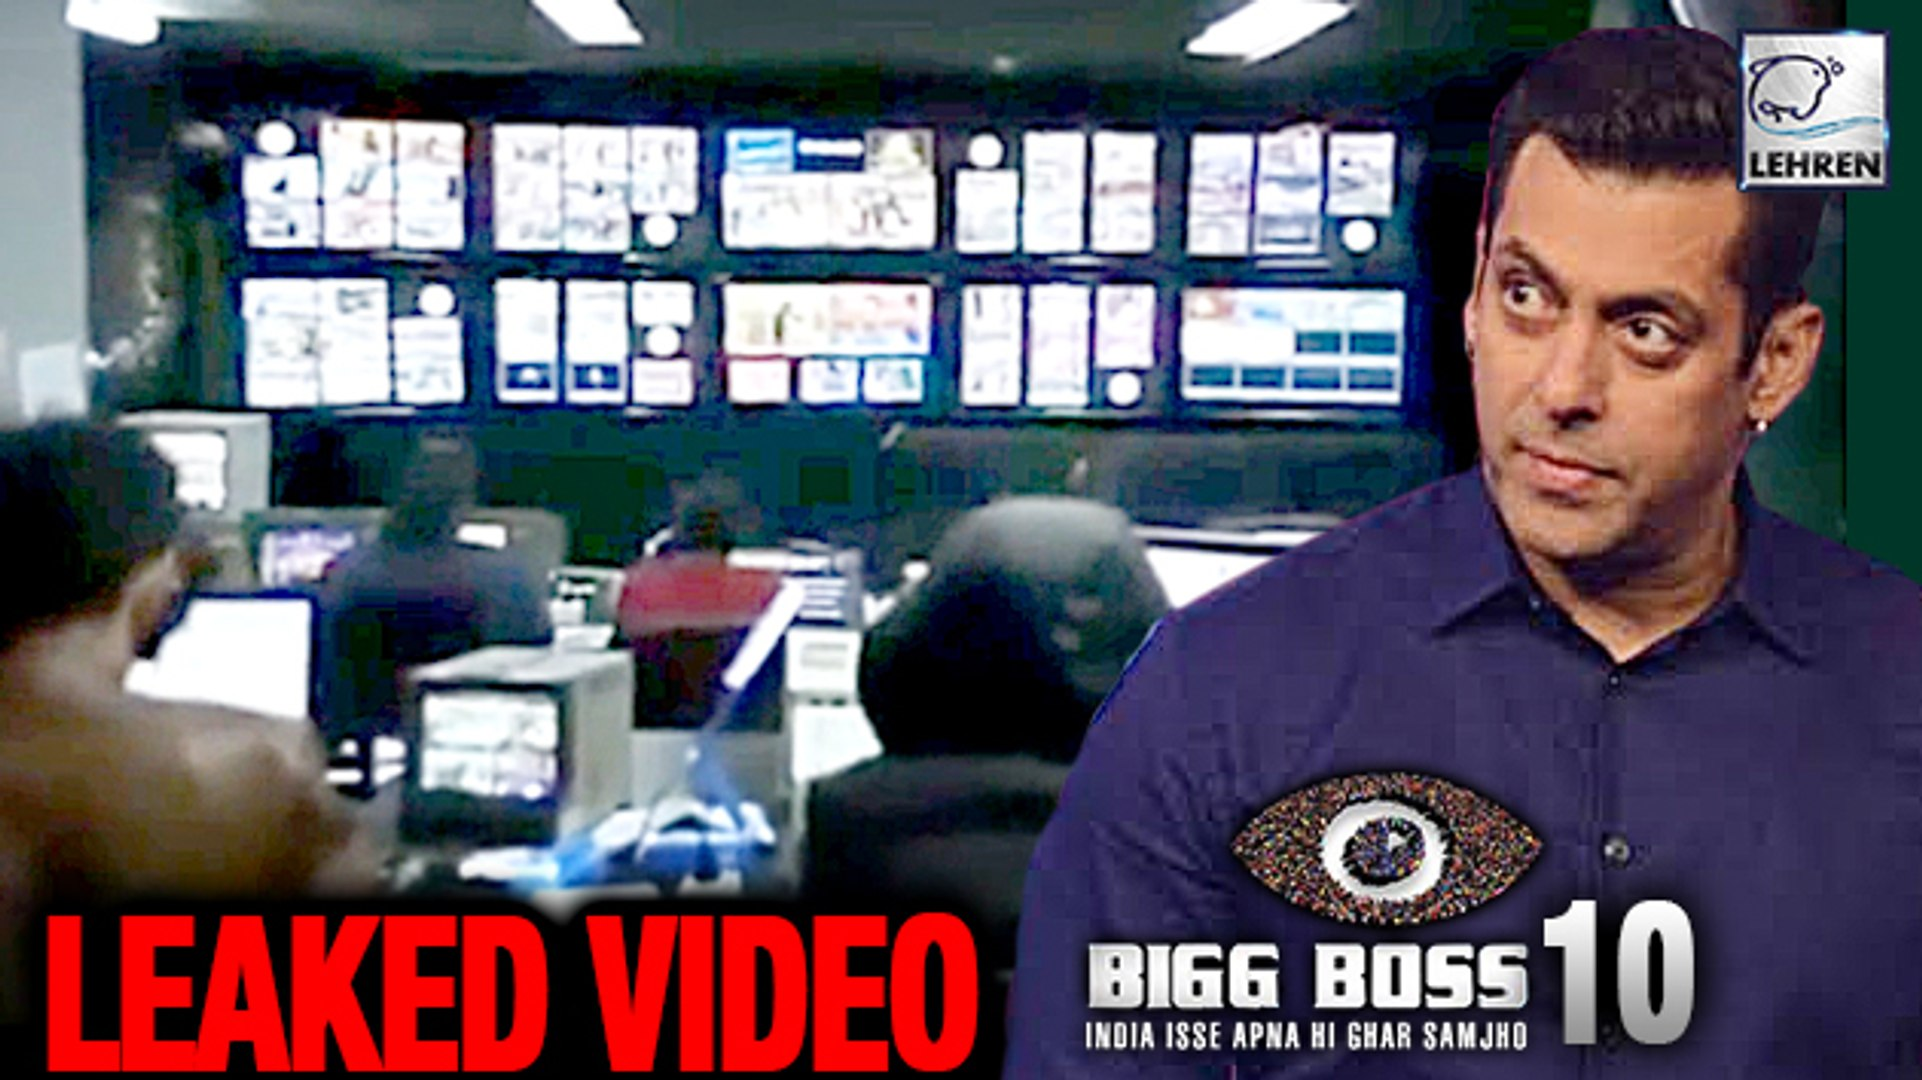 Bigg Boss 10 Control Room LEAKED Video | Bigg Boss Is Scripted?